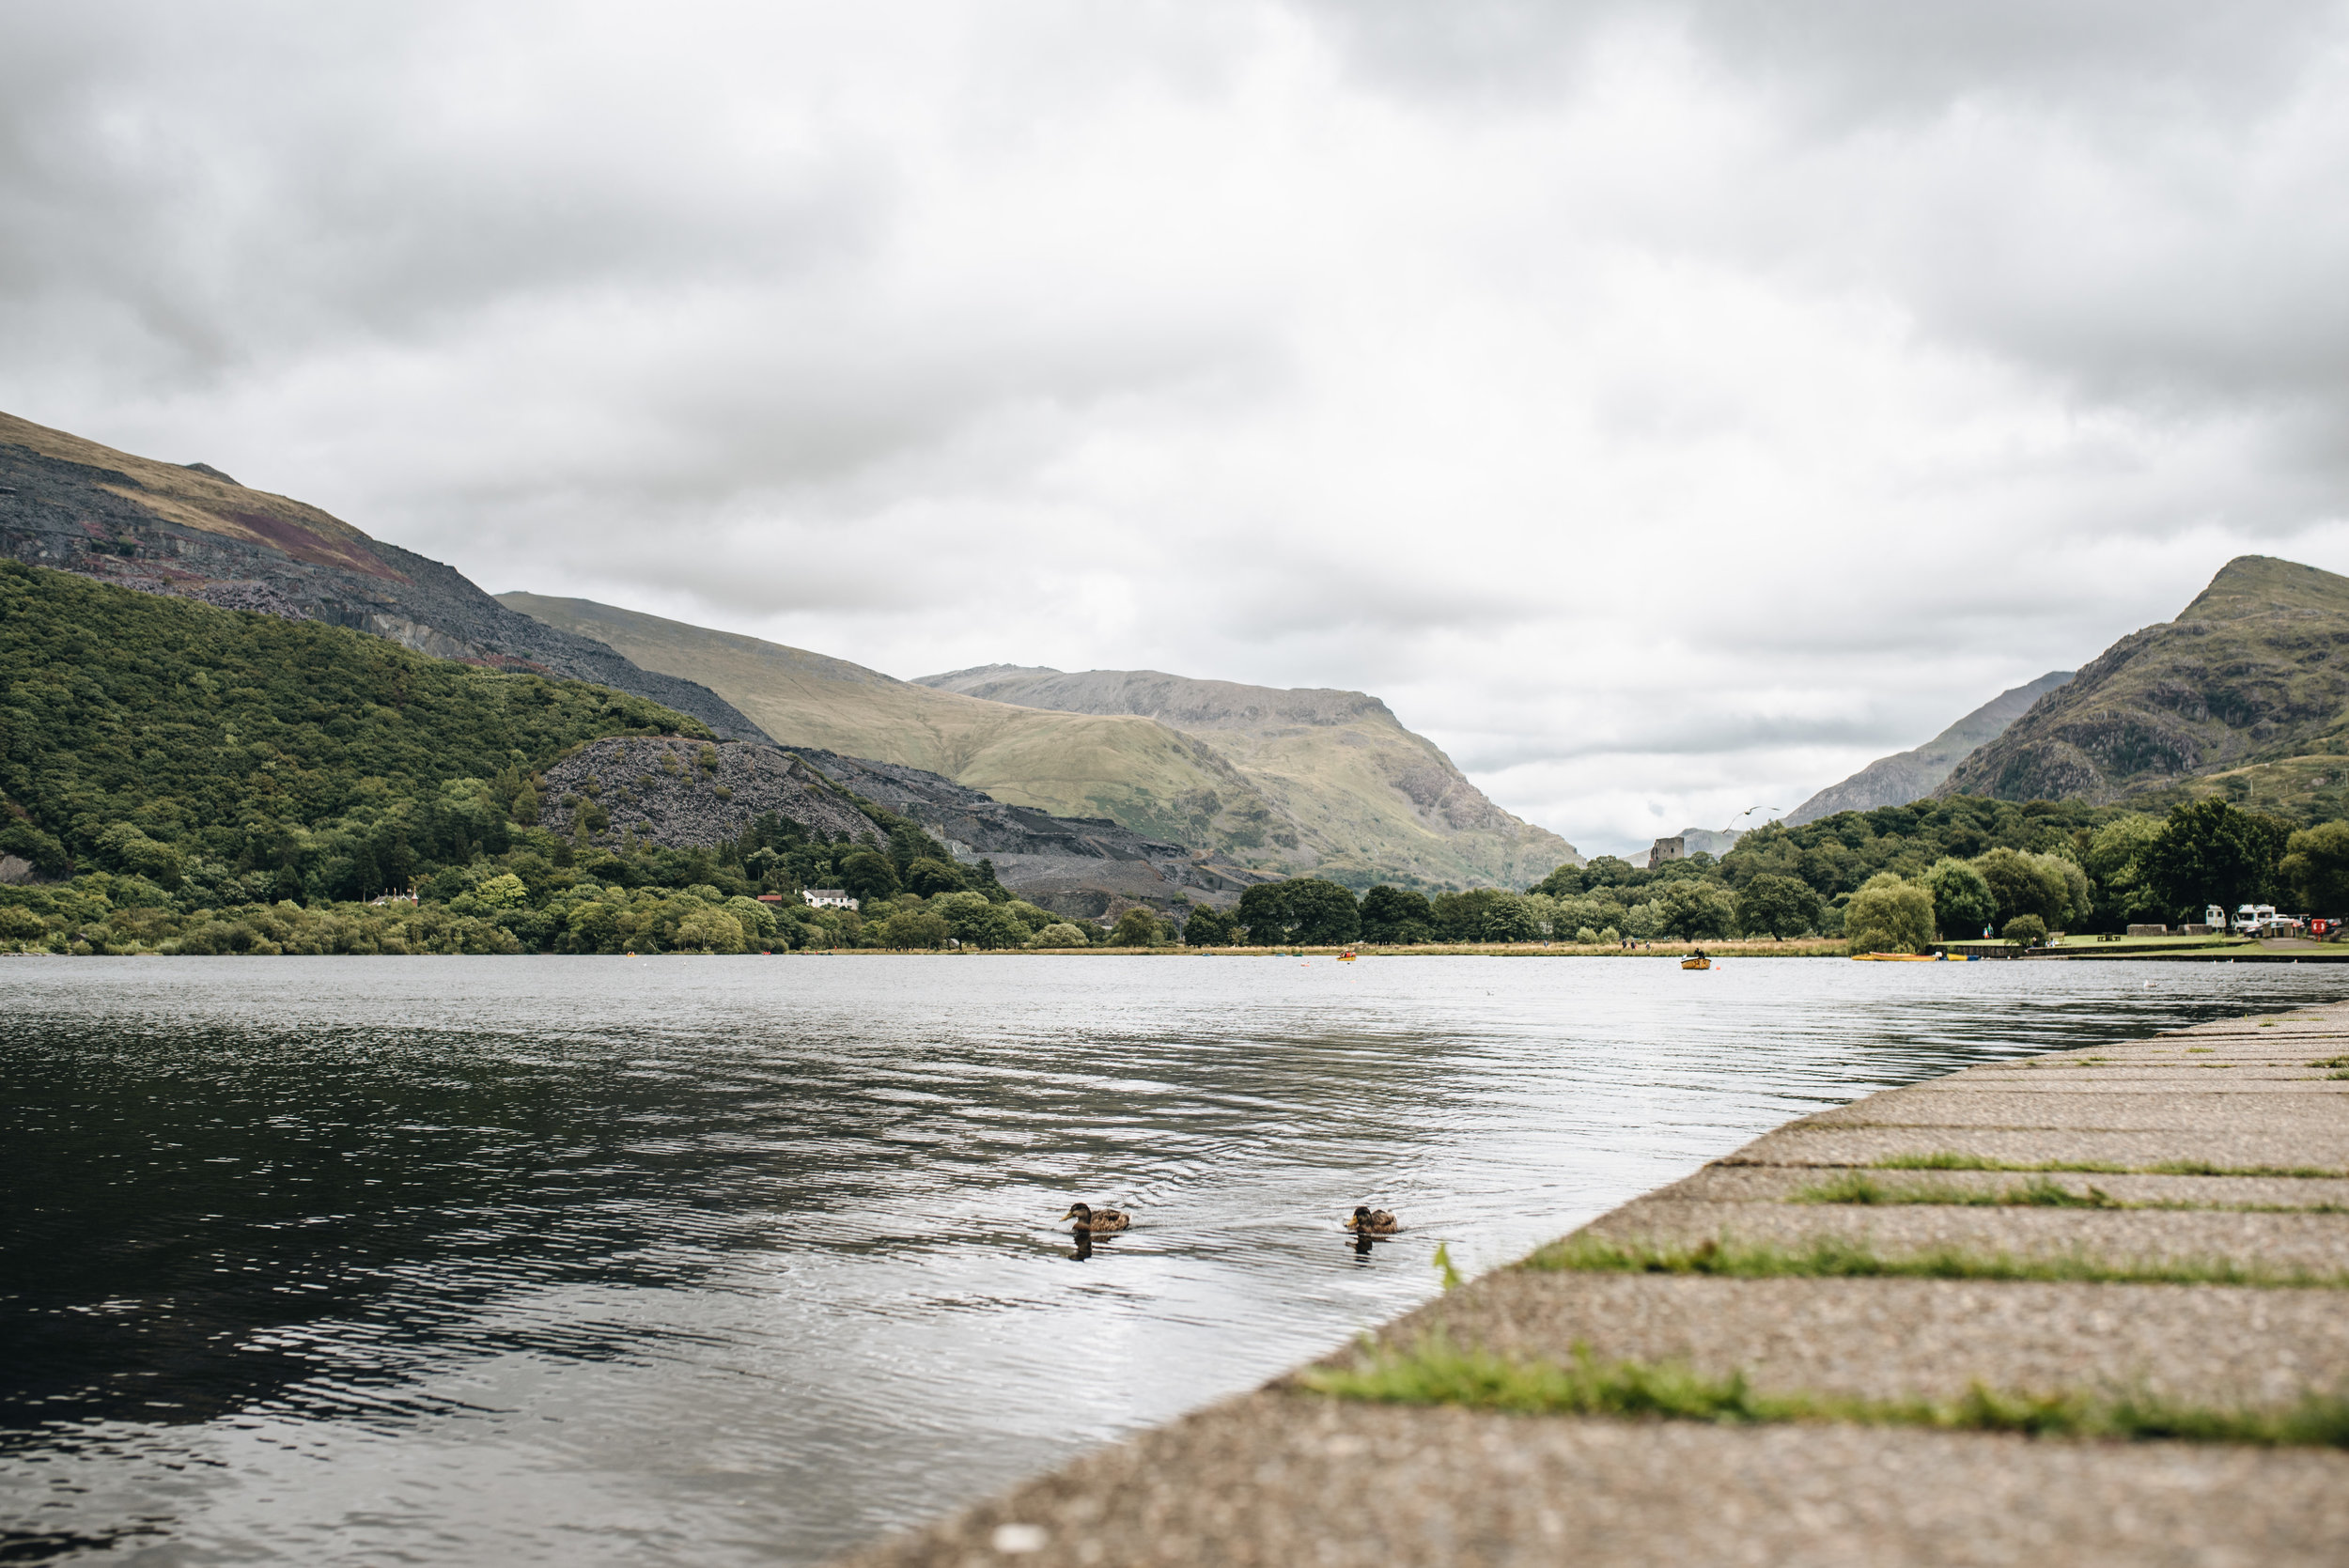 A holiday in North Wales - Llanberis